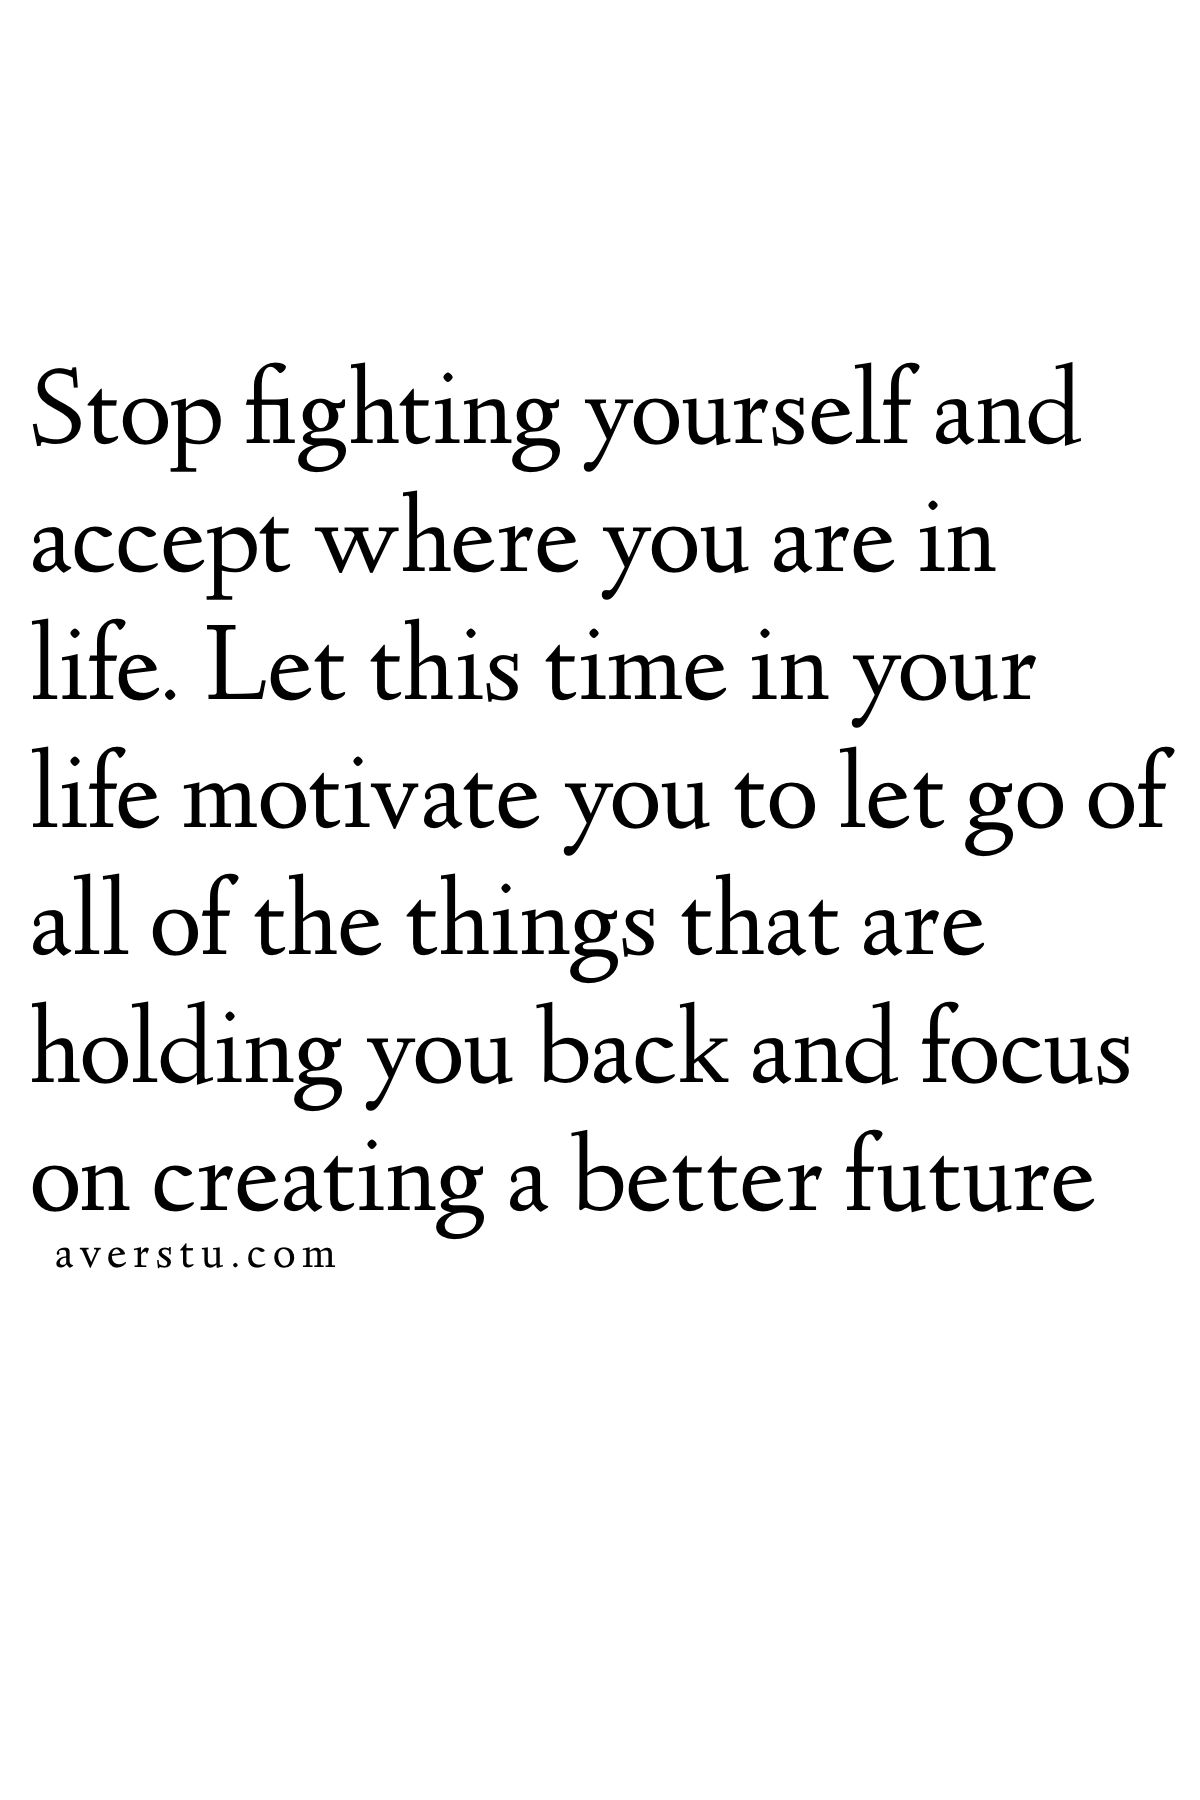 150 Top Self Love Quotes To Always Remember Part 1 The Ultimate Inspirational Life Quotes Better Yourself Quotes Be Yourself Quotes Acceptance Quotes